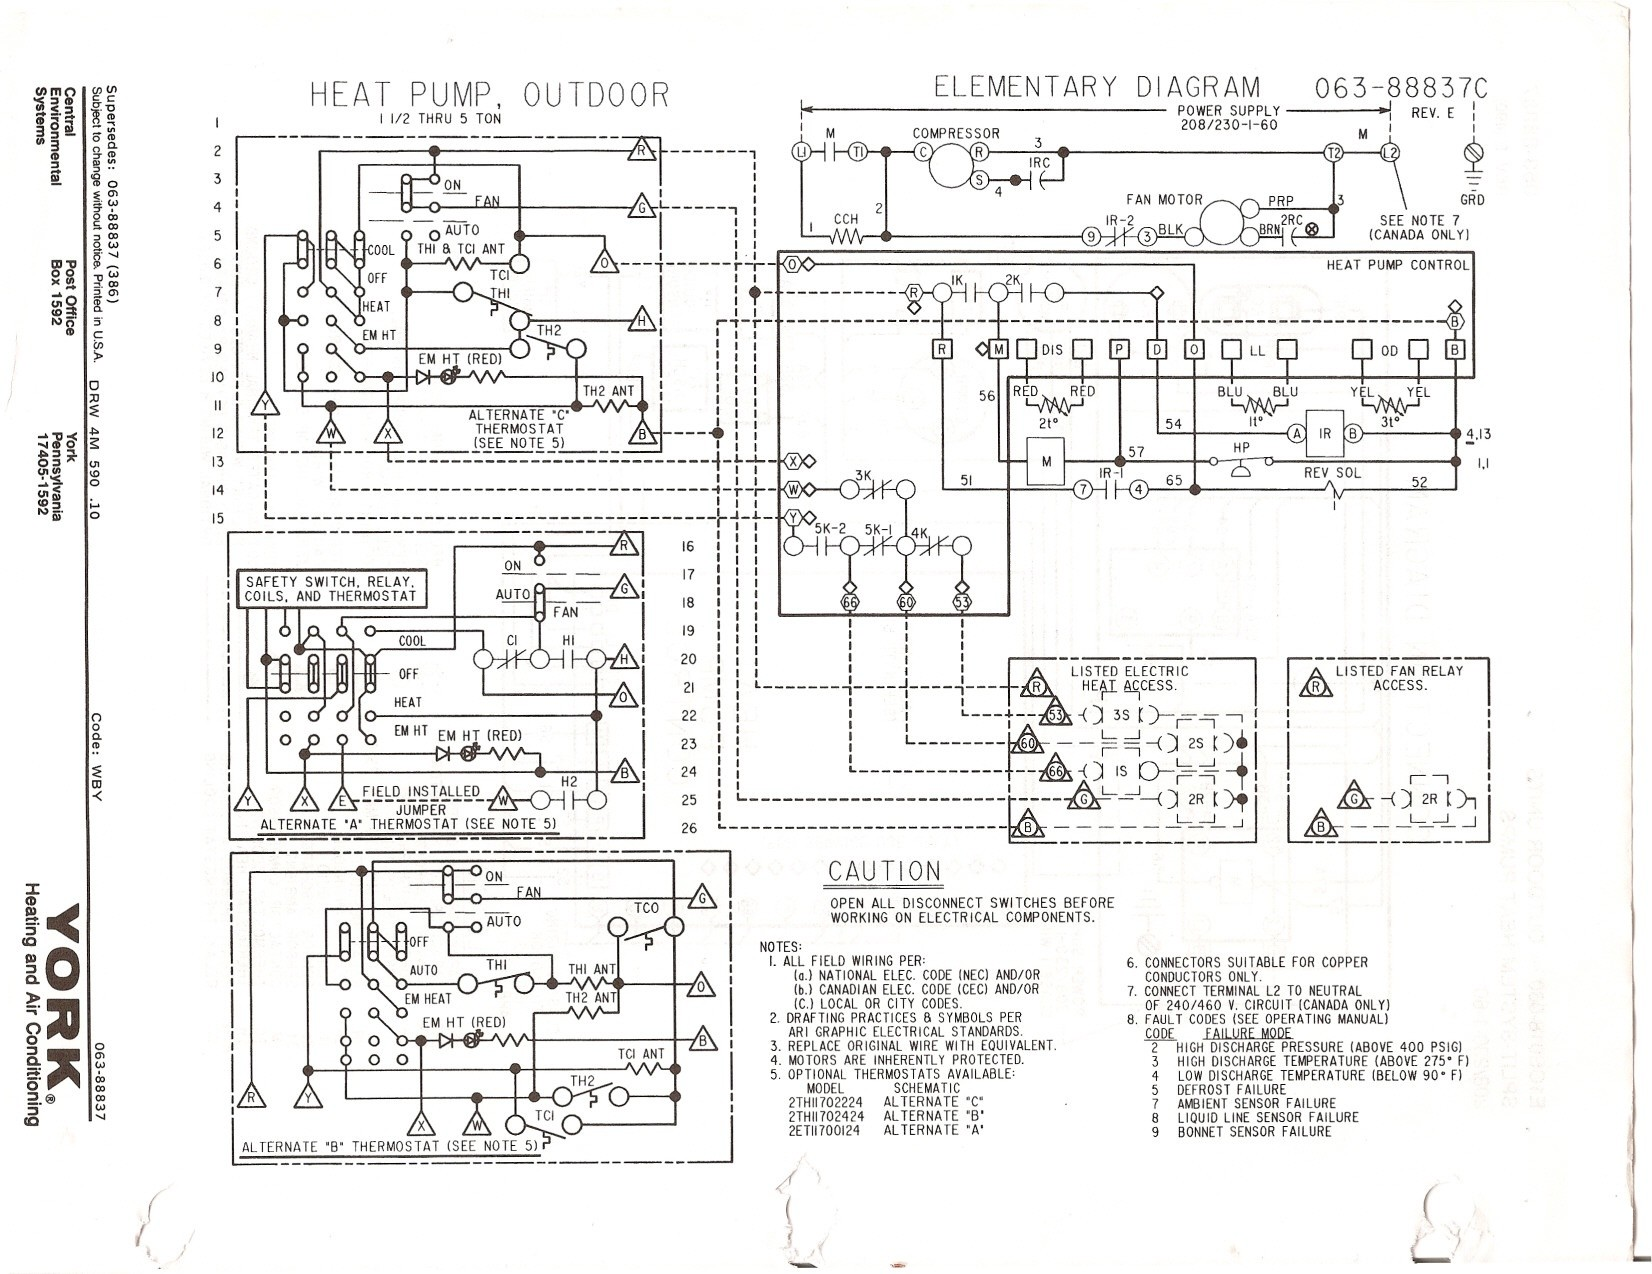 oil furnace and heat pump wiring diagram wiring library rh 16 muehlwald de